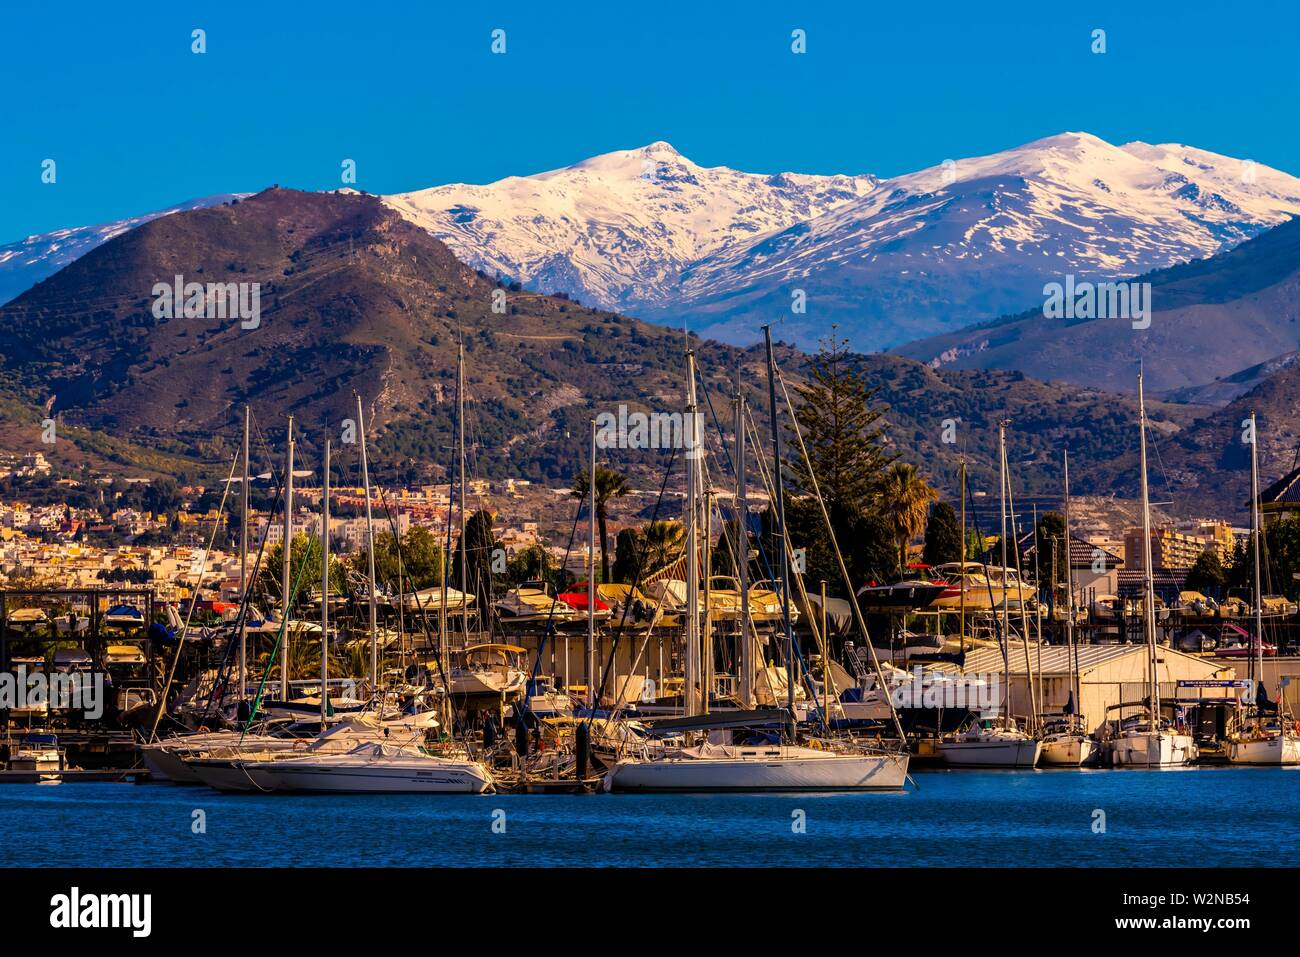 Sailboats In The Harbor Of Motril On The Costa Tropical Of Granada Province With The Snow Capped Sierra Nevada Mountains In The Background Stock Photo Alamy